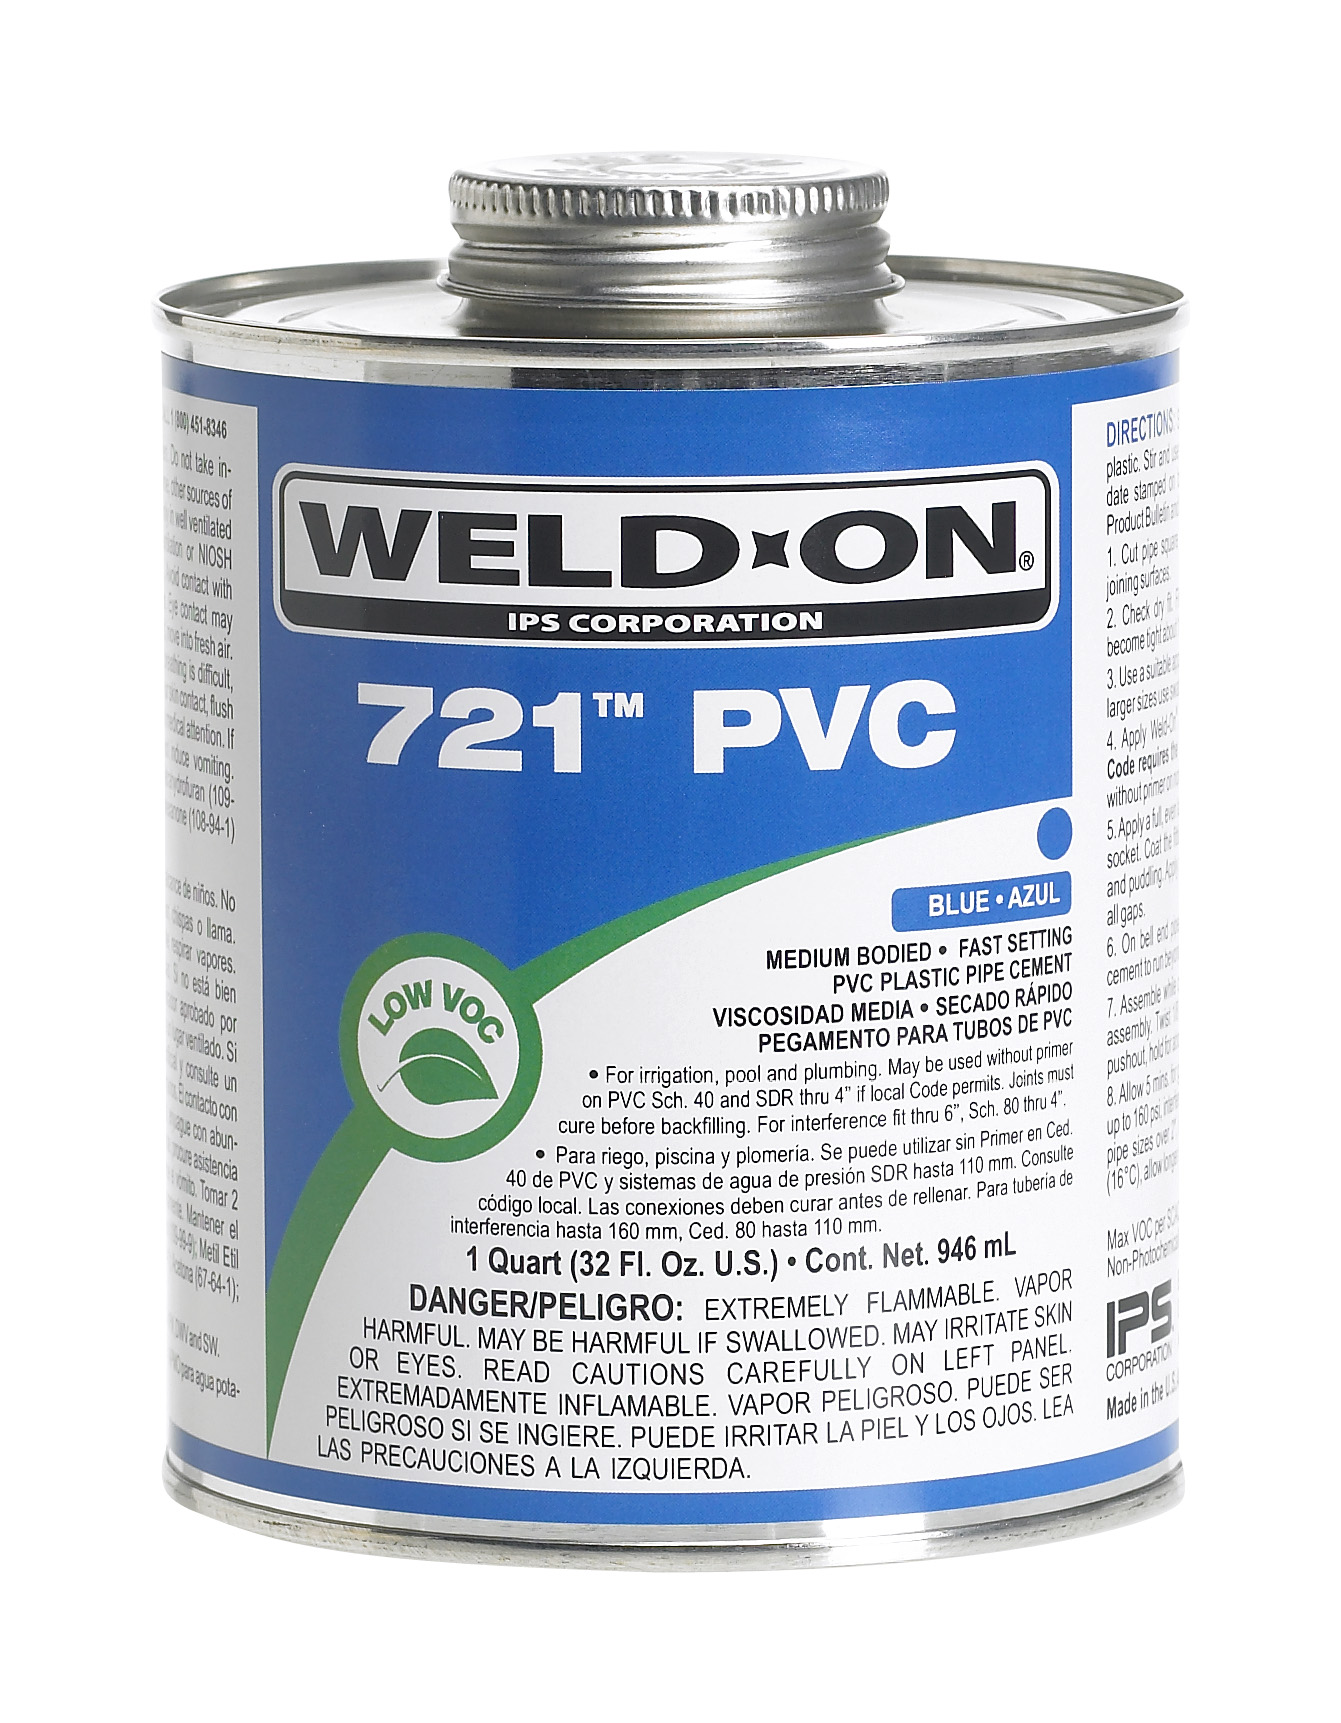 Weld-On 721 PVC Blue, Medium-Bodied, Fast-Setting, PT. Can With Applicator Cap.